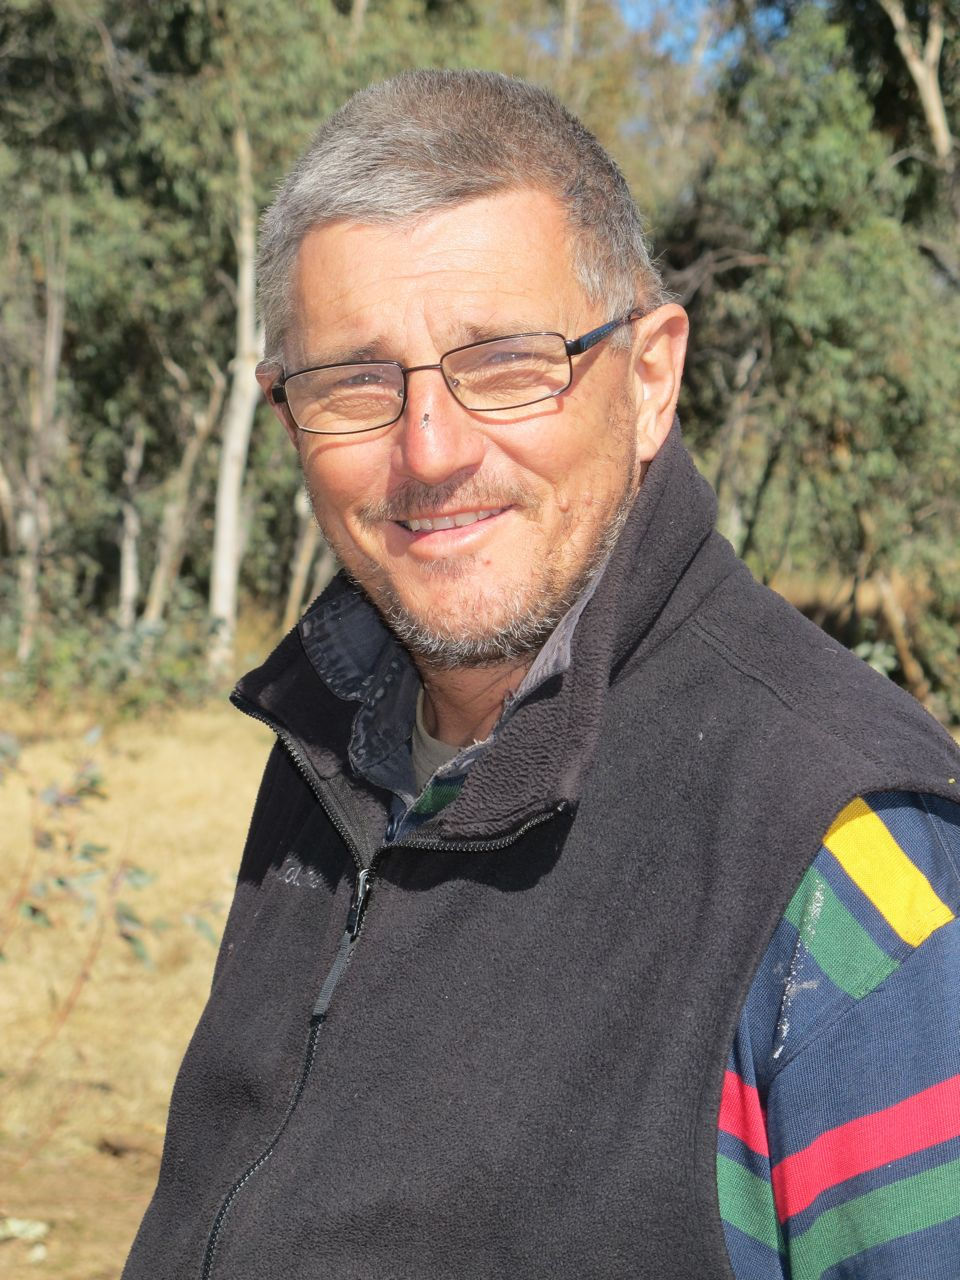 Ian Robinson   I first went to the desert in 2002 looking for God-knows-what. I found it. Since then I have helped hundreds of people to make their own desert journey of discovery. Ian has written a doctorate and two books on the experience and was the first to cross all the seven major deserts in Australia in one journey.